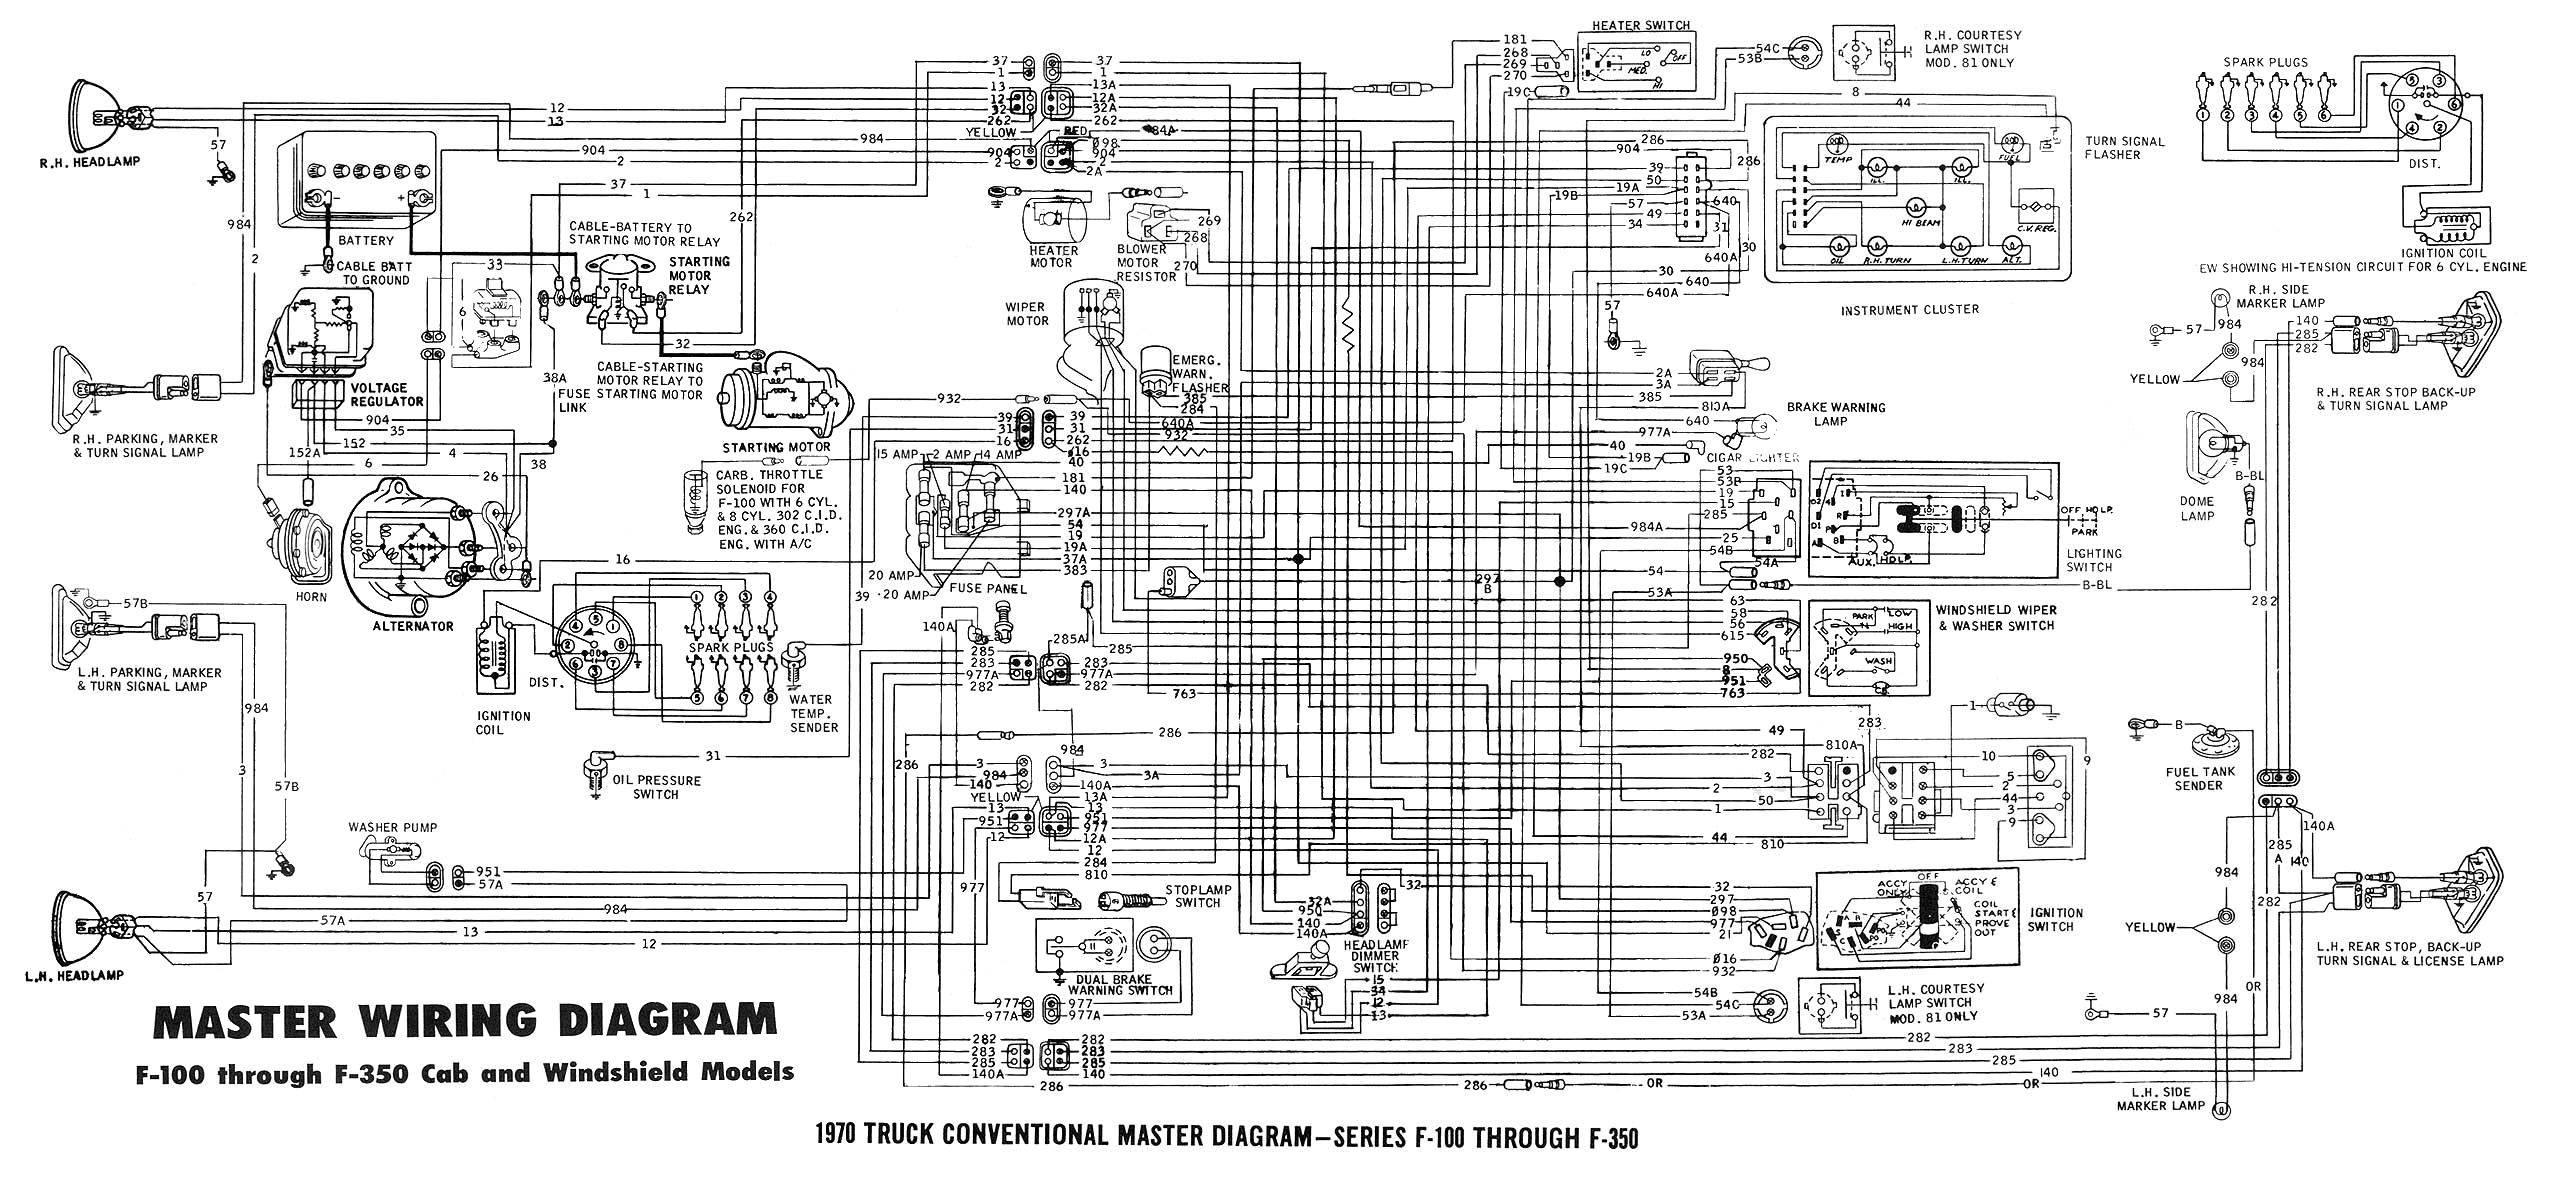 1978 Chevy Truck Fuse Diagram Car Wiring Diagrams Explained \u2022 01 Chevy  Pickup Fuse Box Chevy Truck Fuse Box